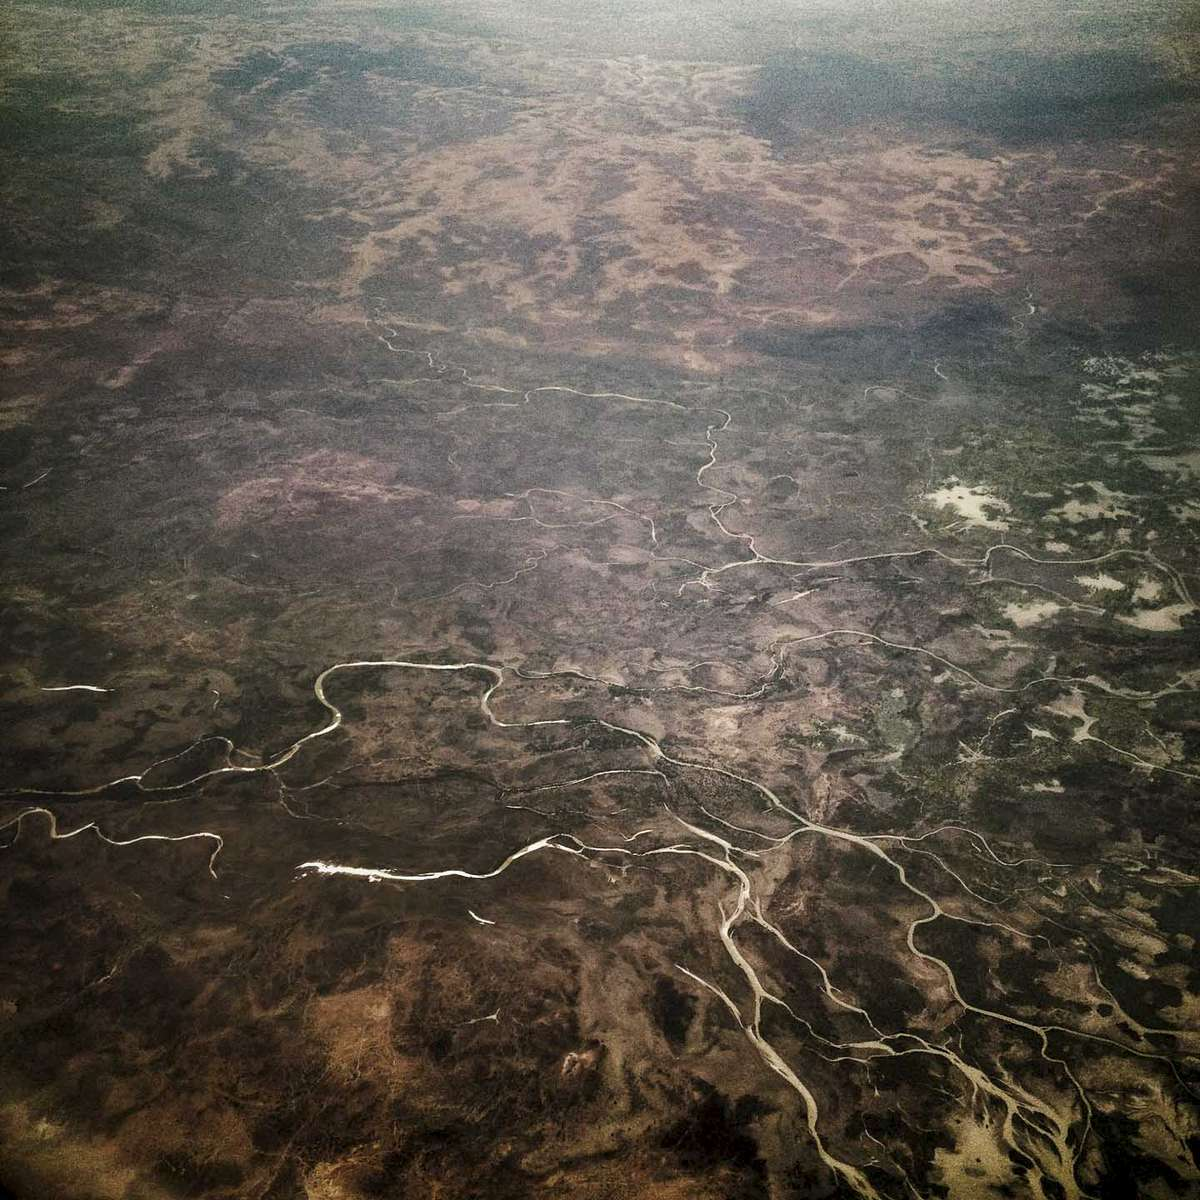 Scorched earth. Eastern Chad. November 2013.